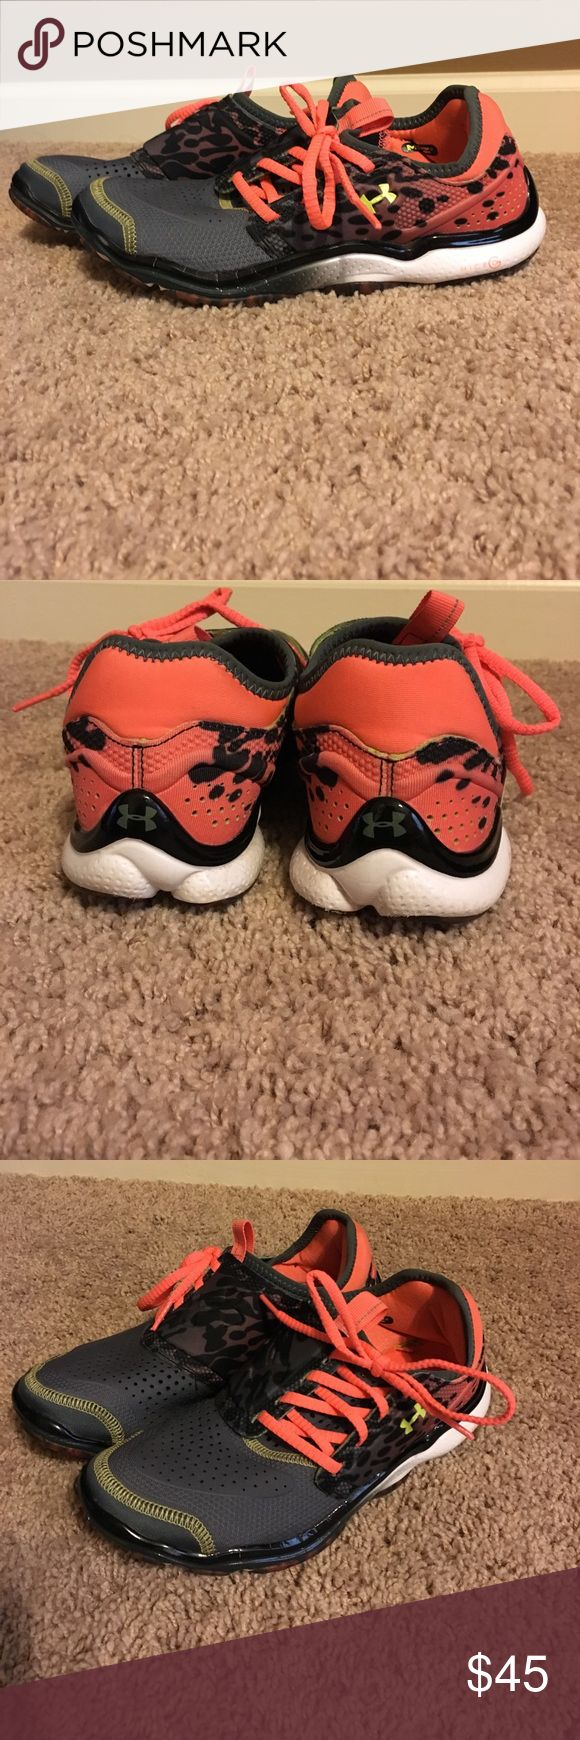 Under Armor Micro G Toxic 6 Running Shoe Coral and Grey Leopard Print Under Armor Micro G Toxic 6 Running Shoe with Side Tie and Lime Under Armor Symbol. Extremely Lightweight. Worn 2-3 times, still in good condition. Under Armour Shoes Athletic Shoes